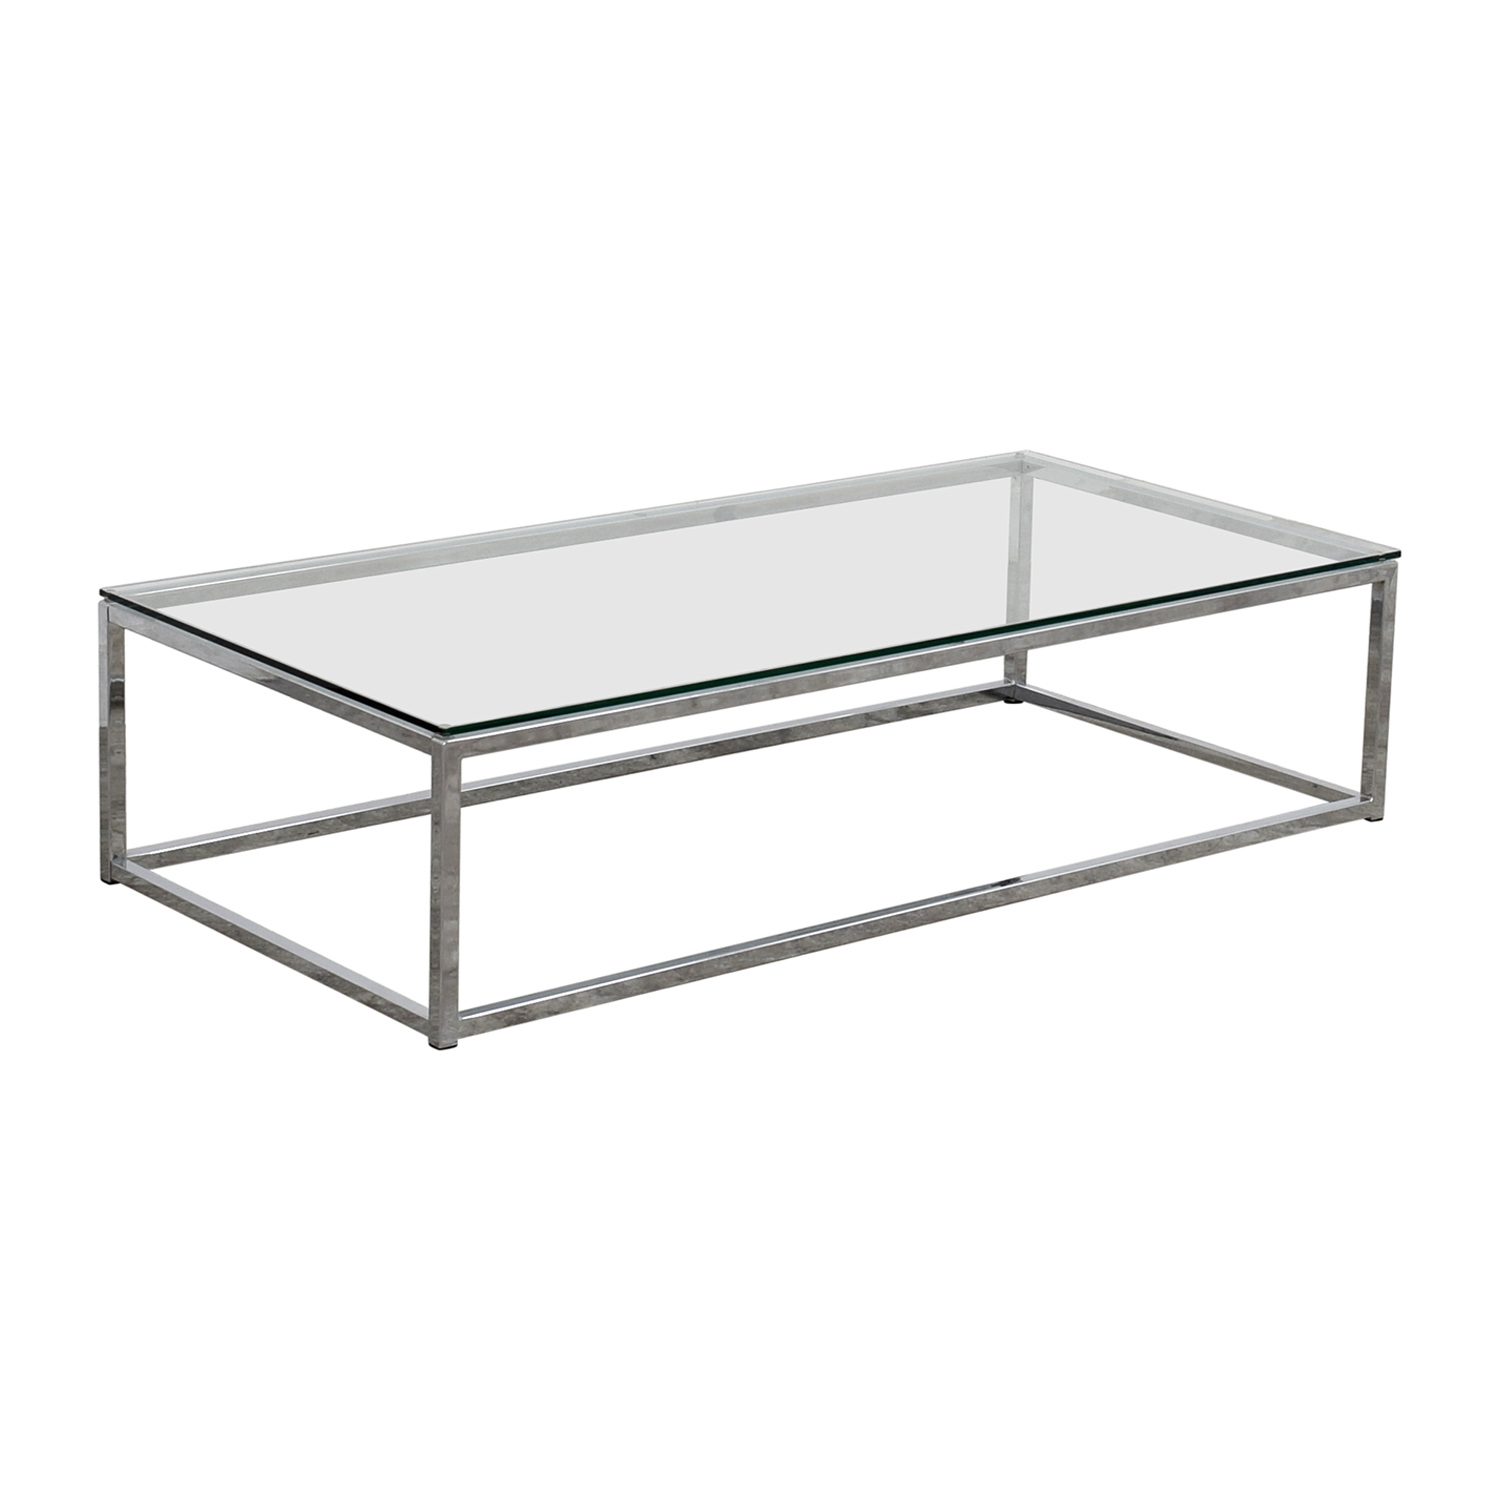 OFF CB CB Glass And Chrome Coffee Table Tables - Cb2 glass coffee table